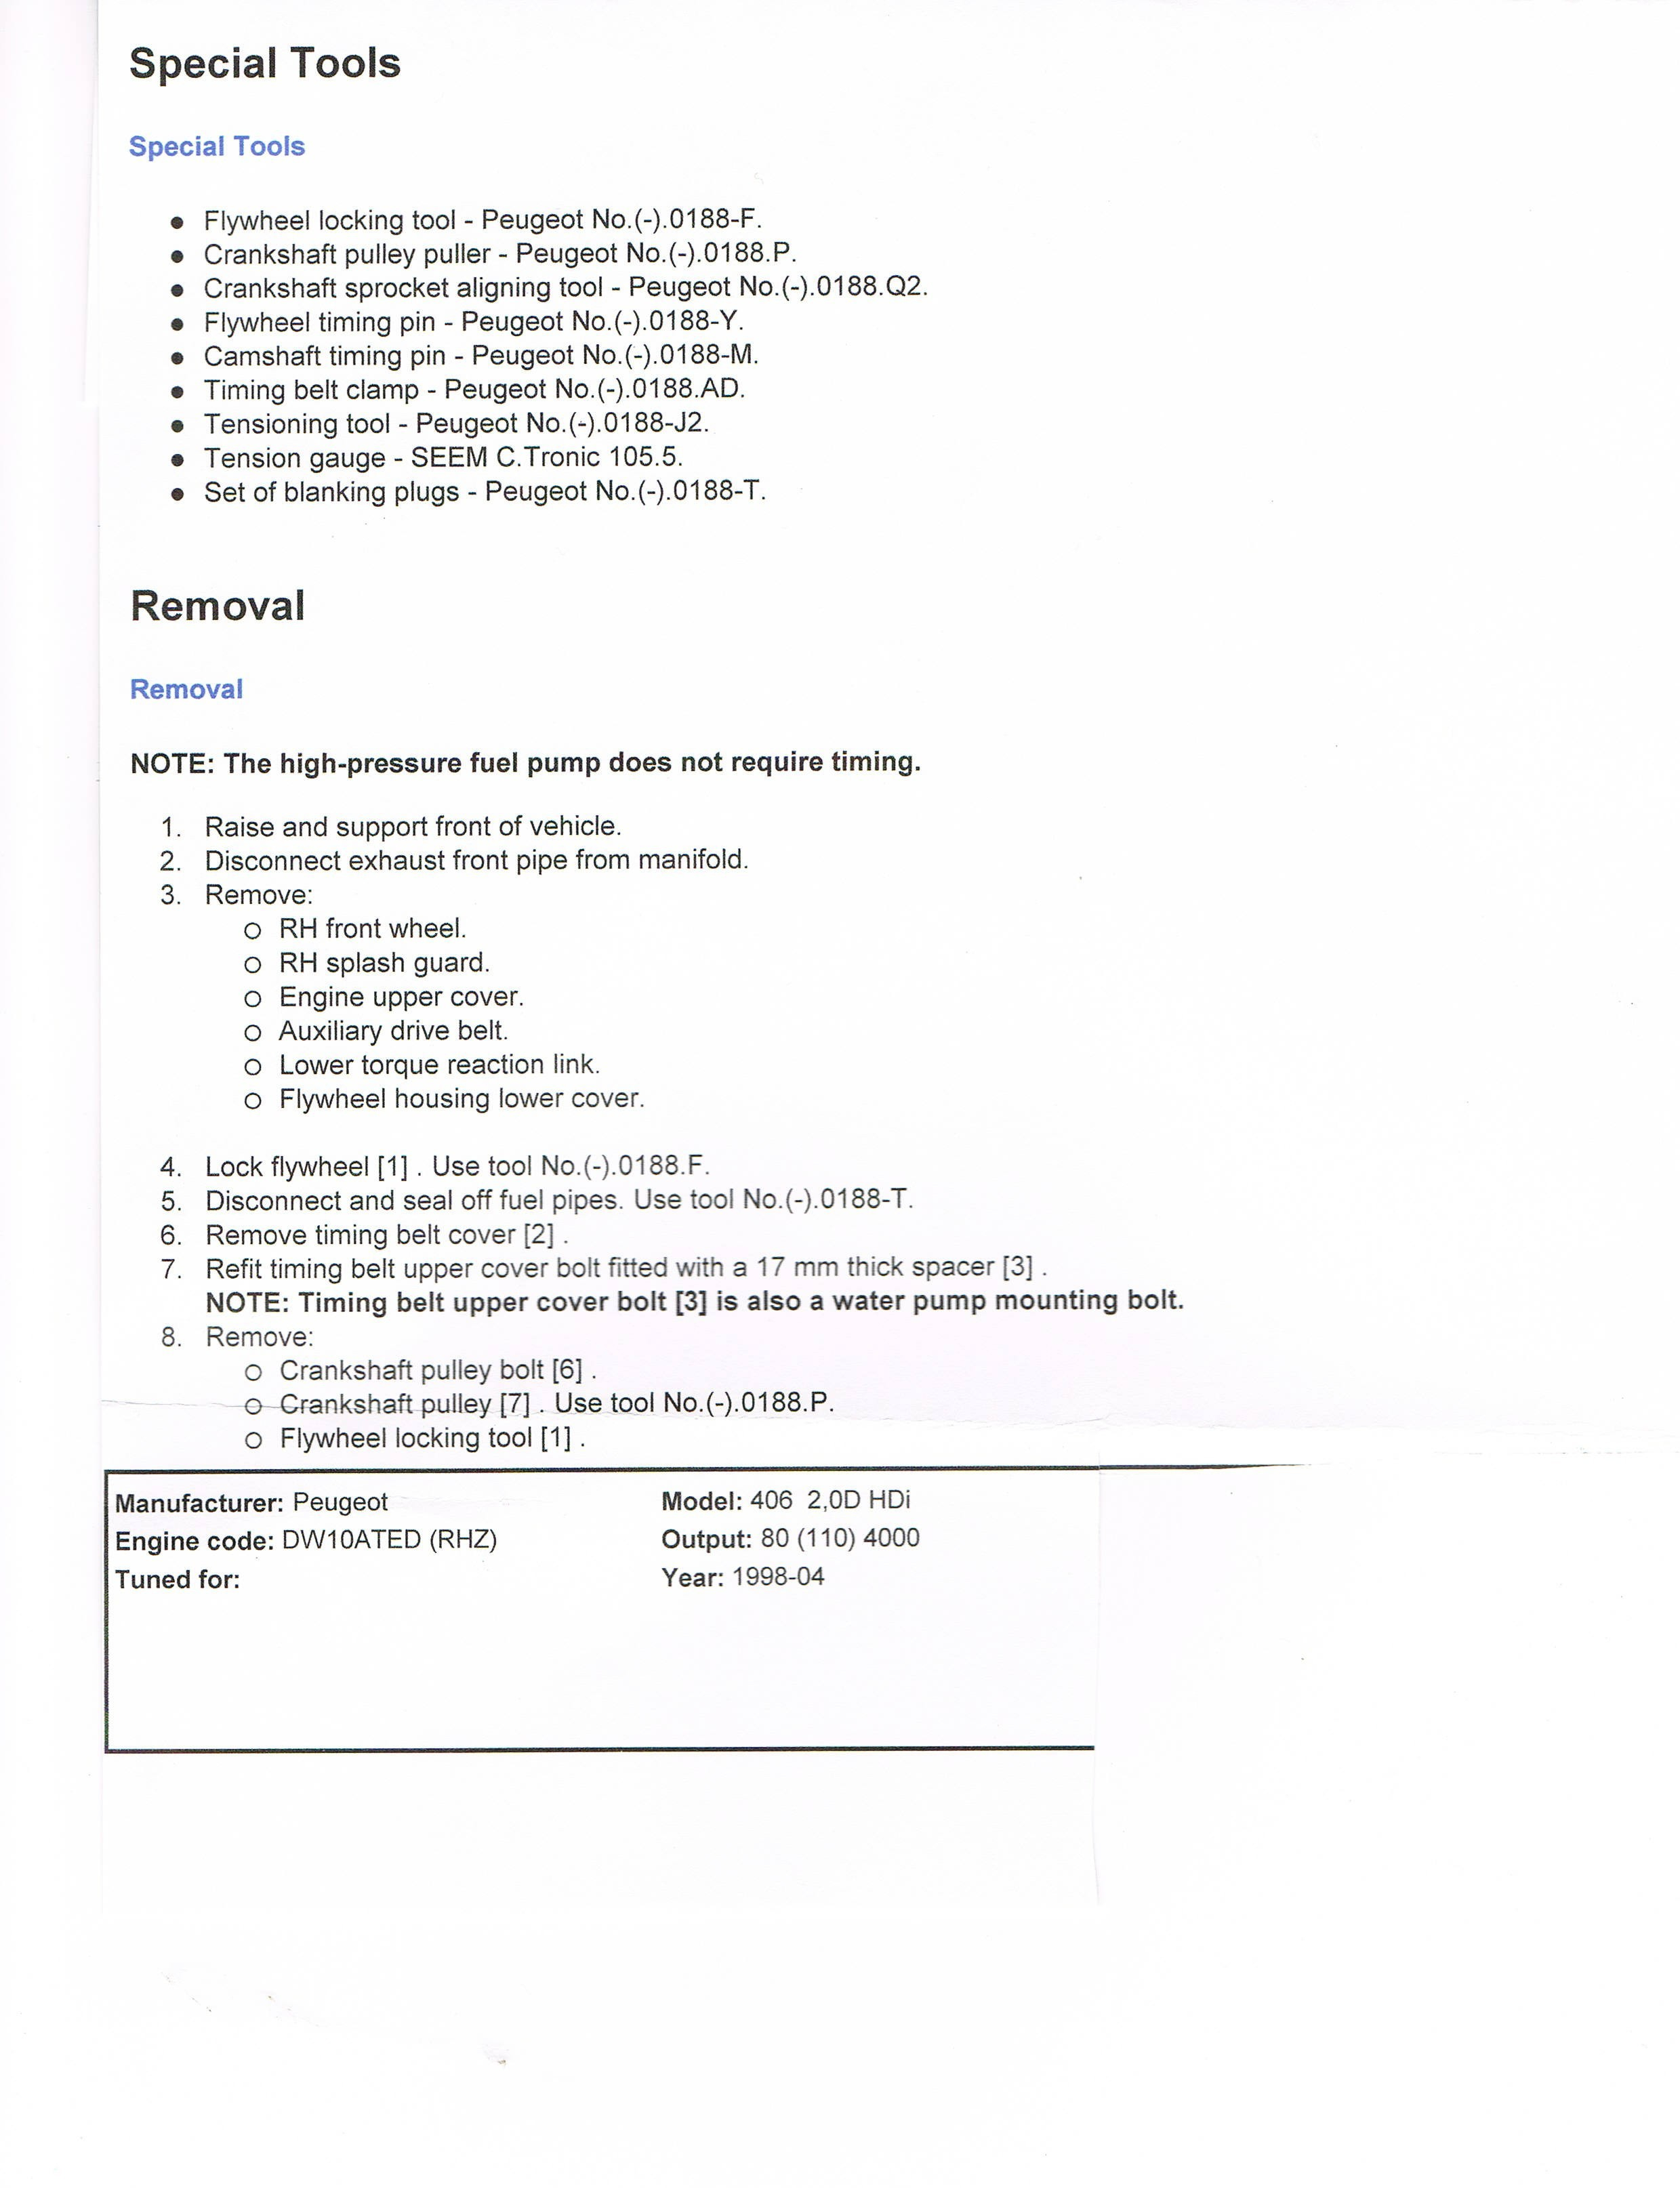 Query Letter Template - Job Query Letter New Query Letter Example Fresh 31 Best Job Letter